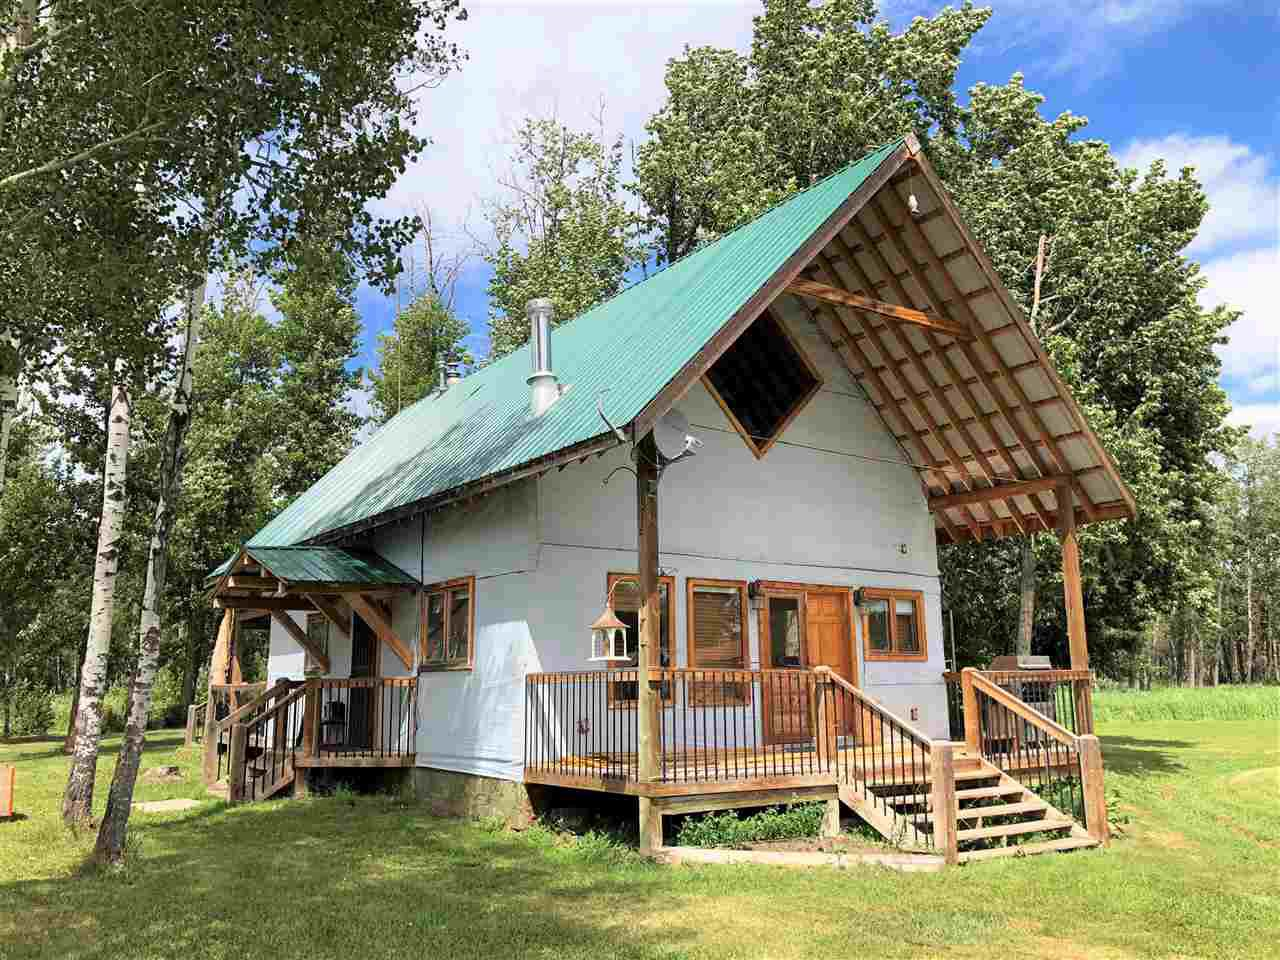 Main Photo: 273044A Hwy 611: Rural Wetaskiwin County House for sale : MLS®# E4118237